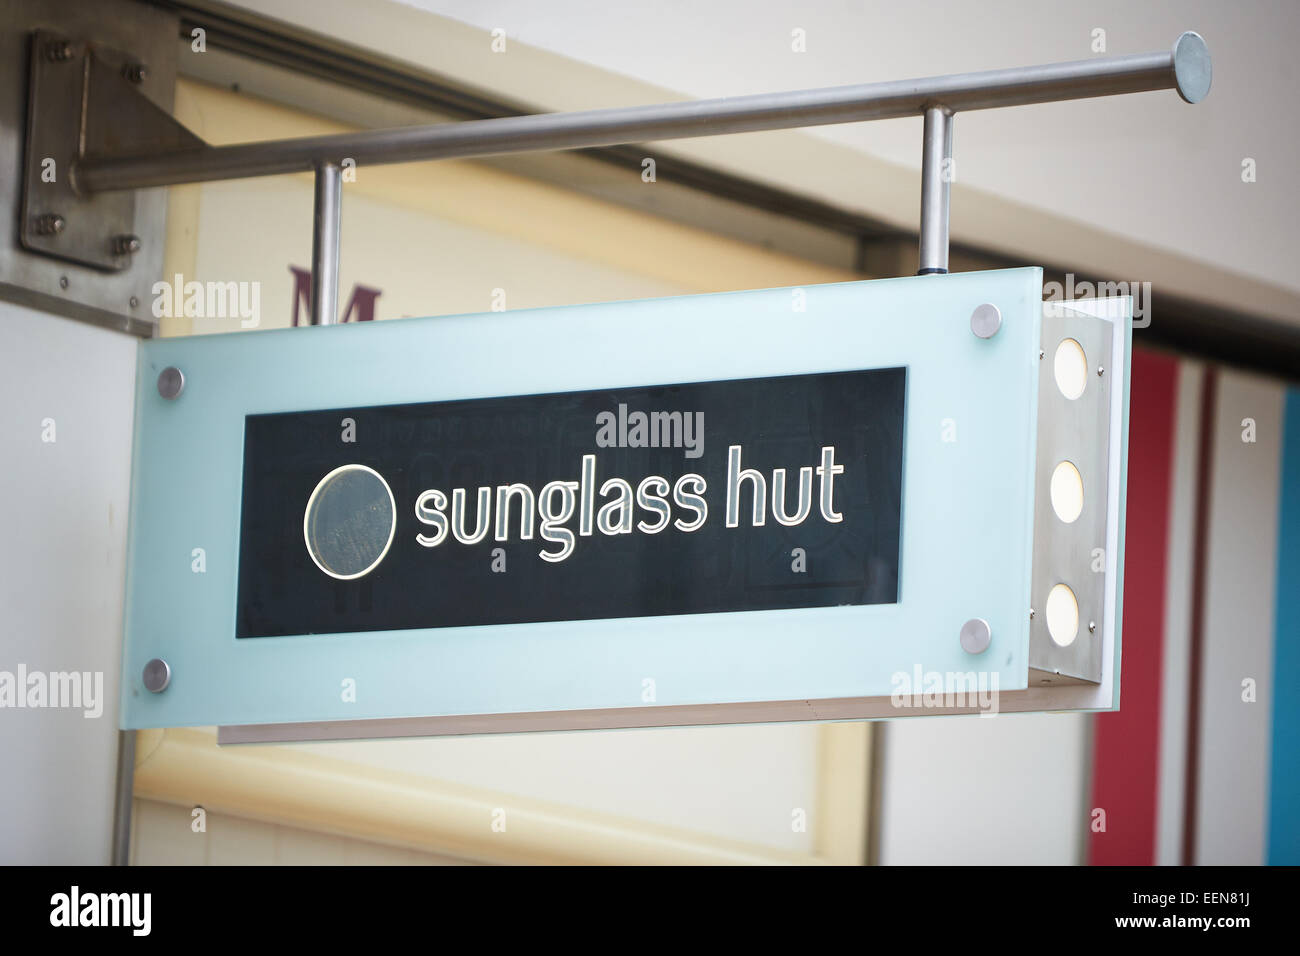 Sign for Sunglass Hut shop in the Clarendon Centre, Oxford - Stock Image